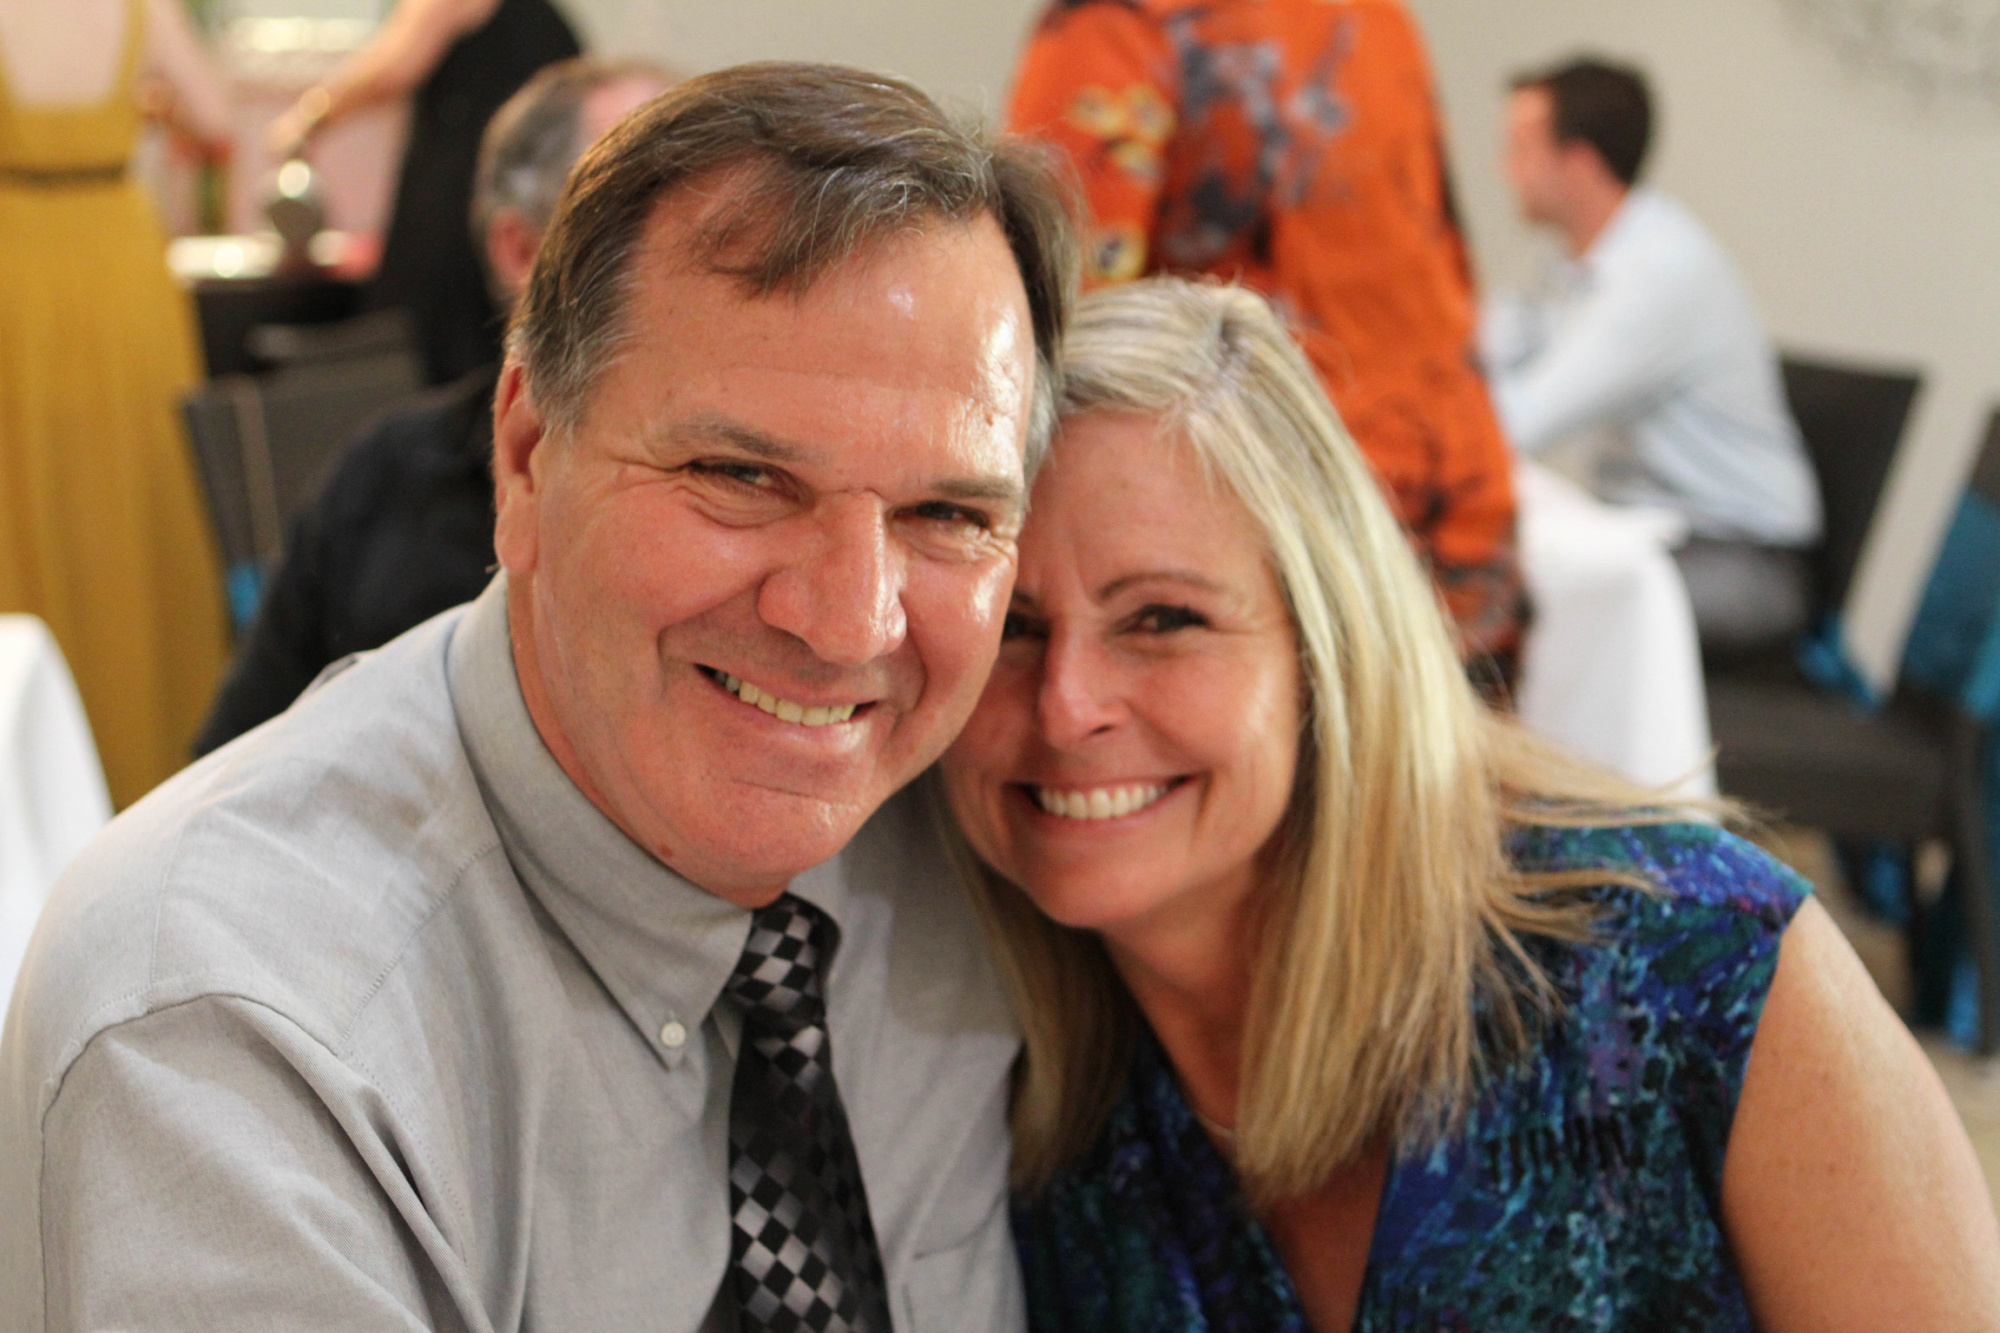 Chuck loved his wife and cared for her living life together vibrantly!